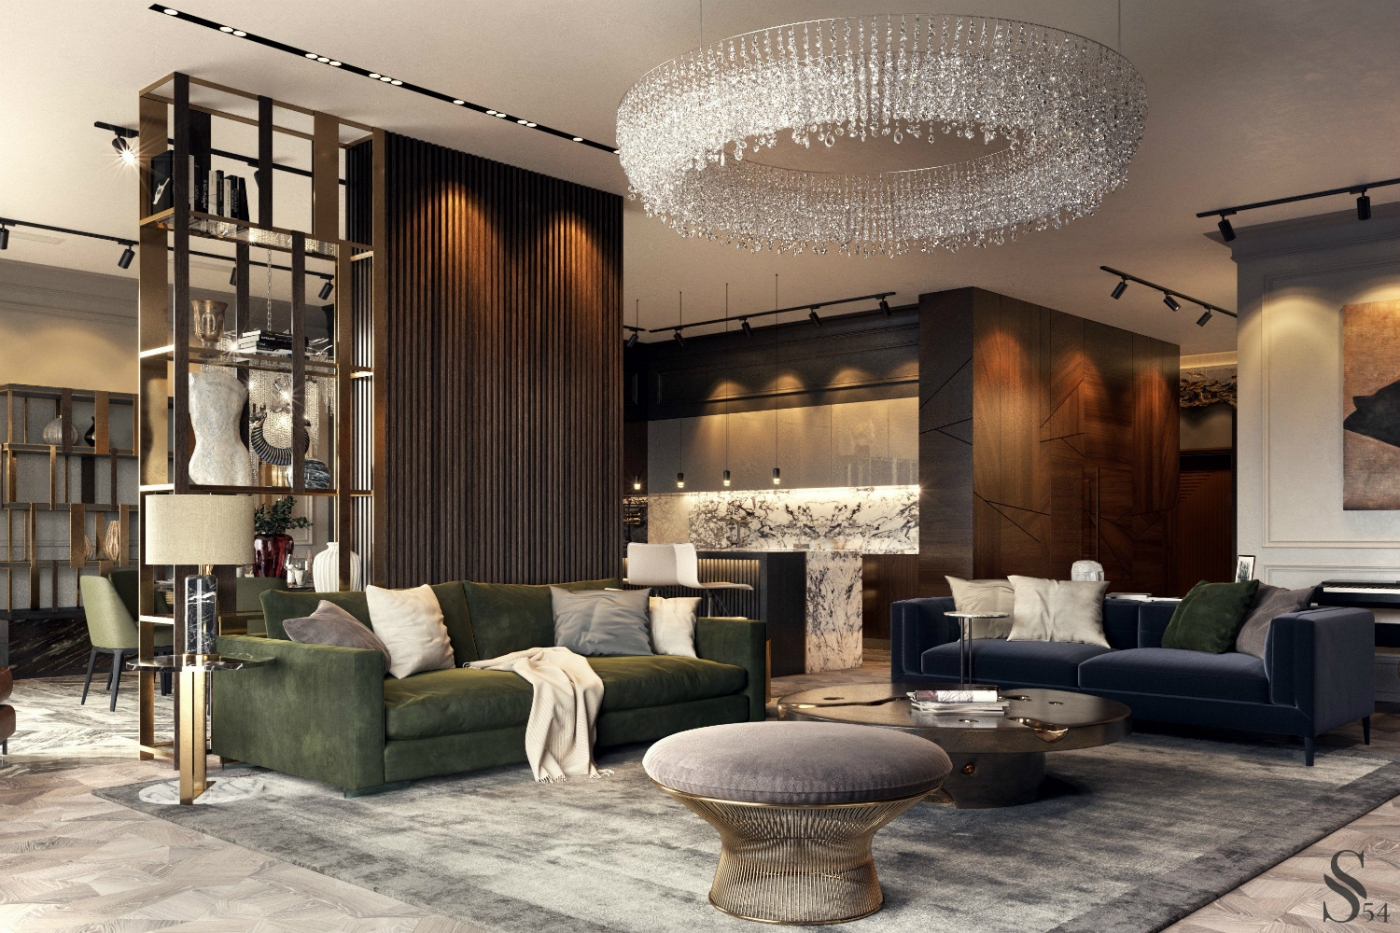 moscow apartment Earth Tones Set The Mood In This Luxury Moscow Apartment feature 6 1400x933